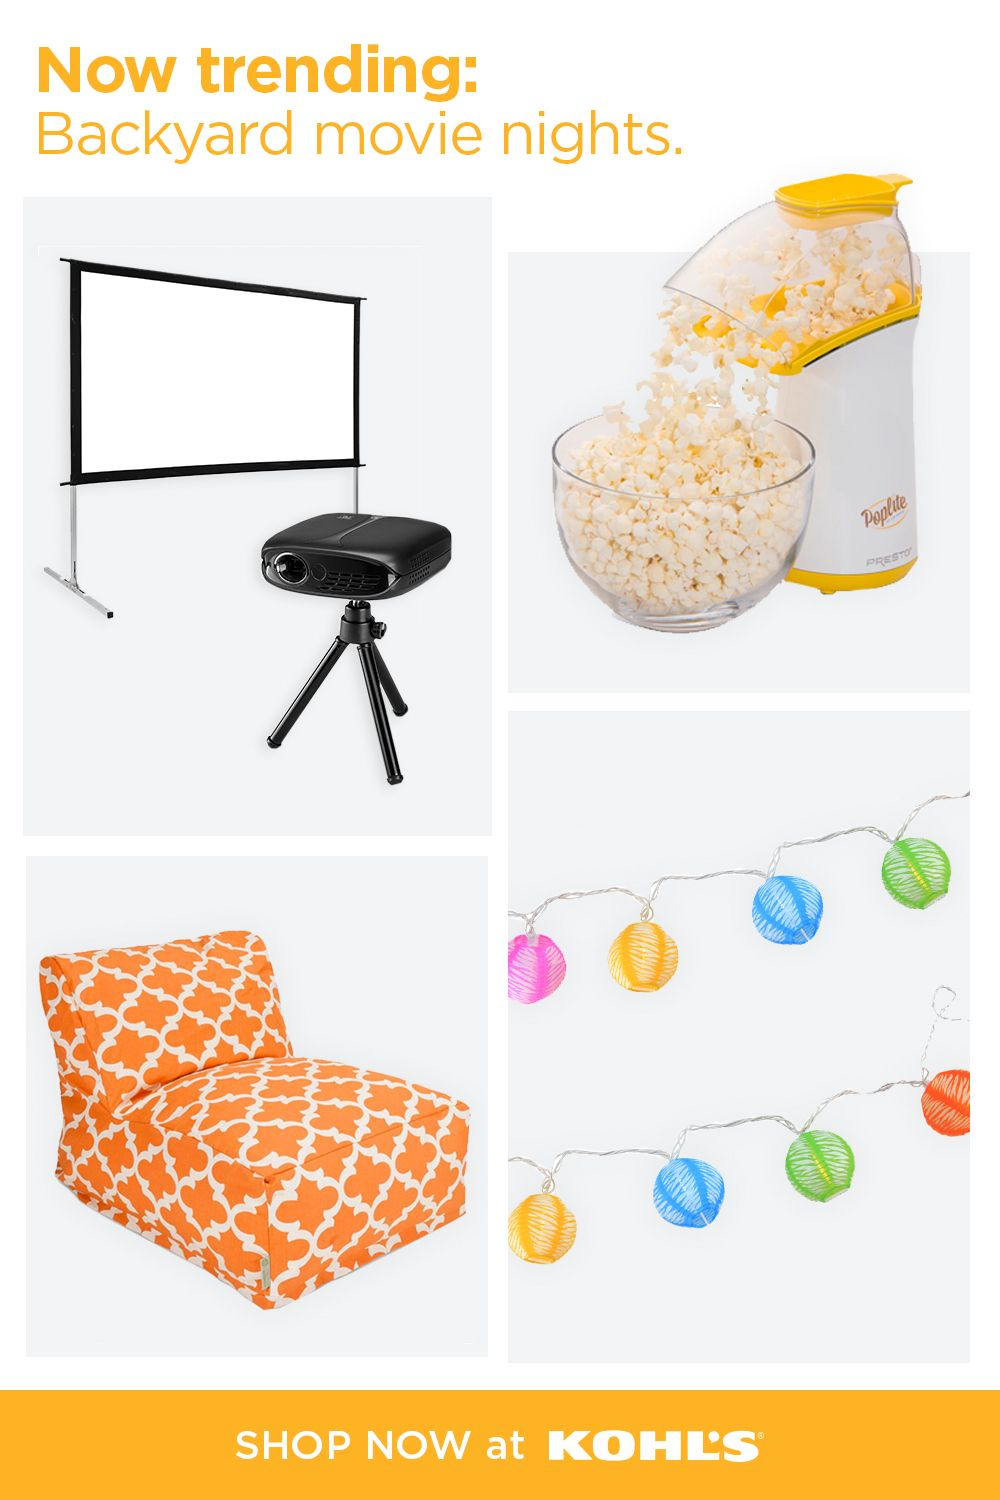 Find backyard movie musthaves at Kohl's. in 2020